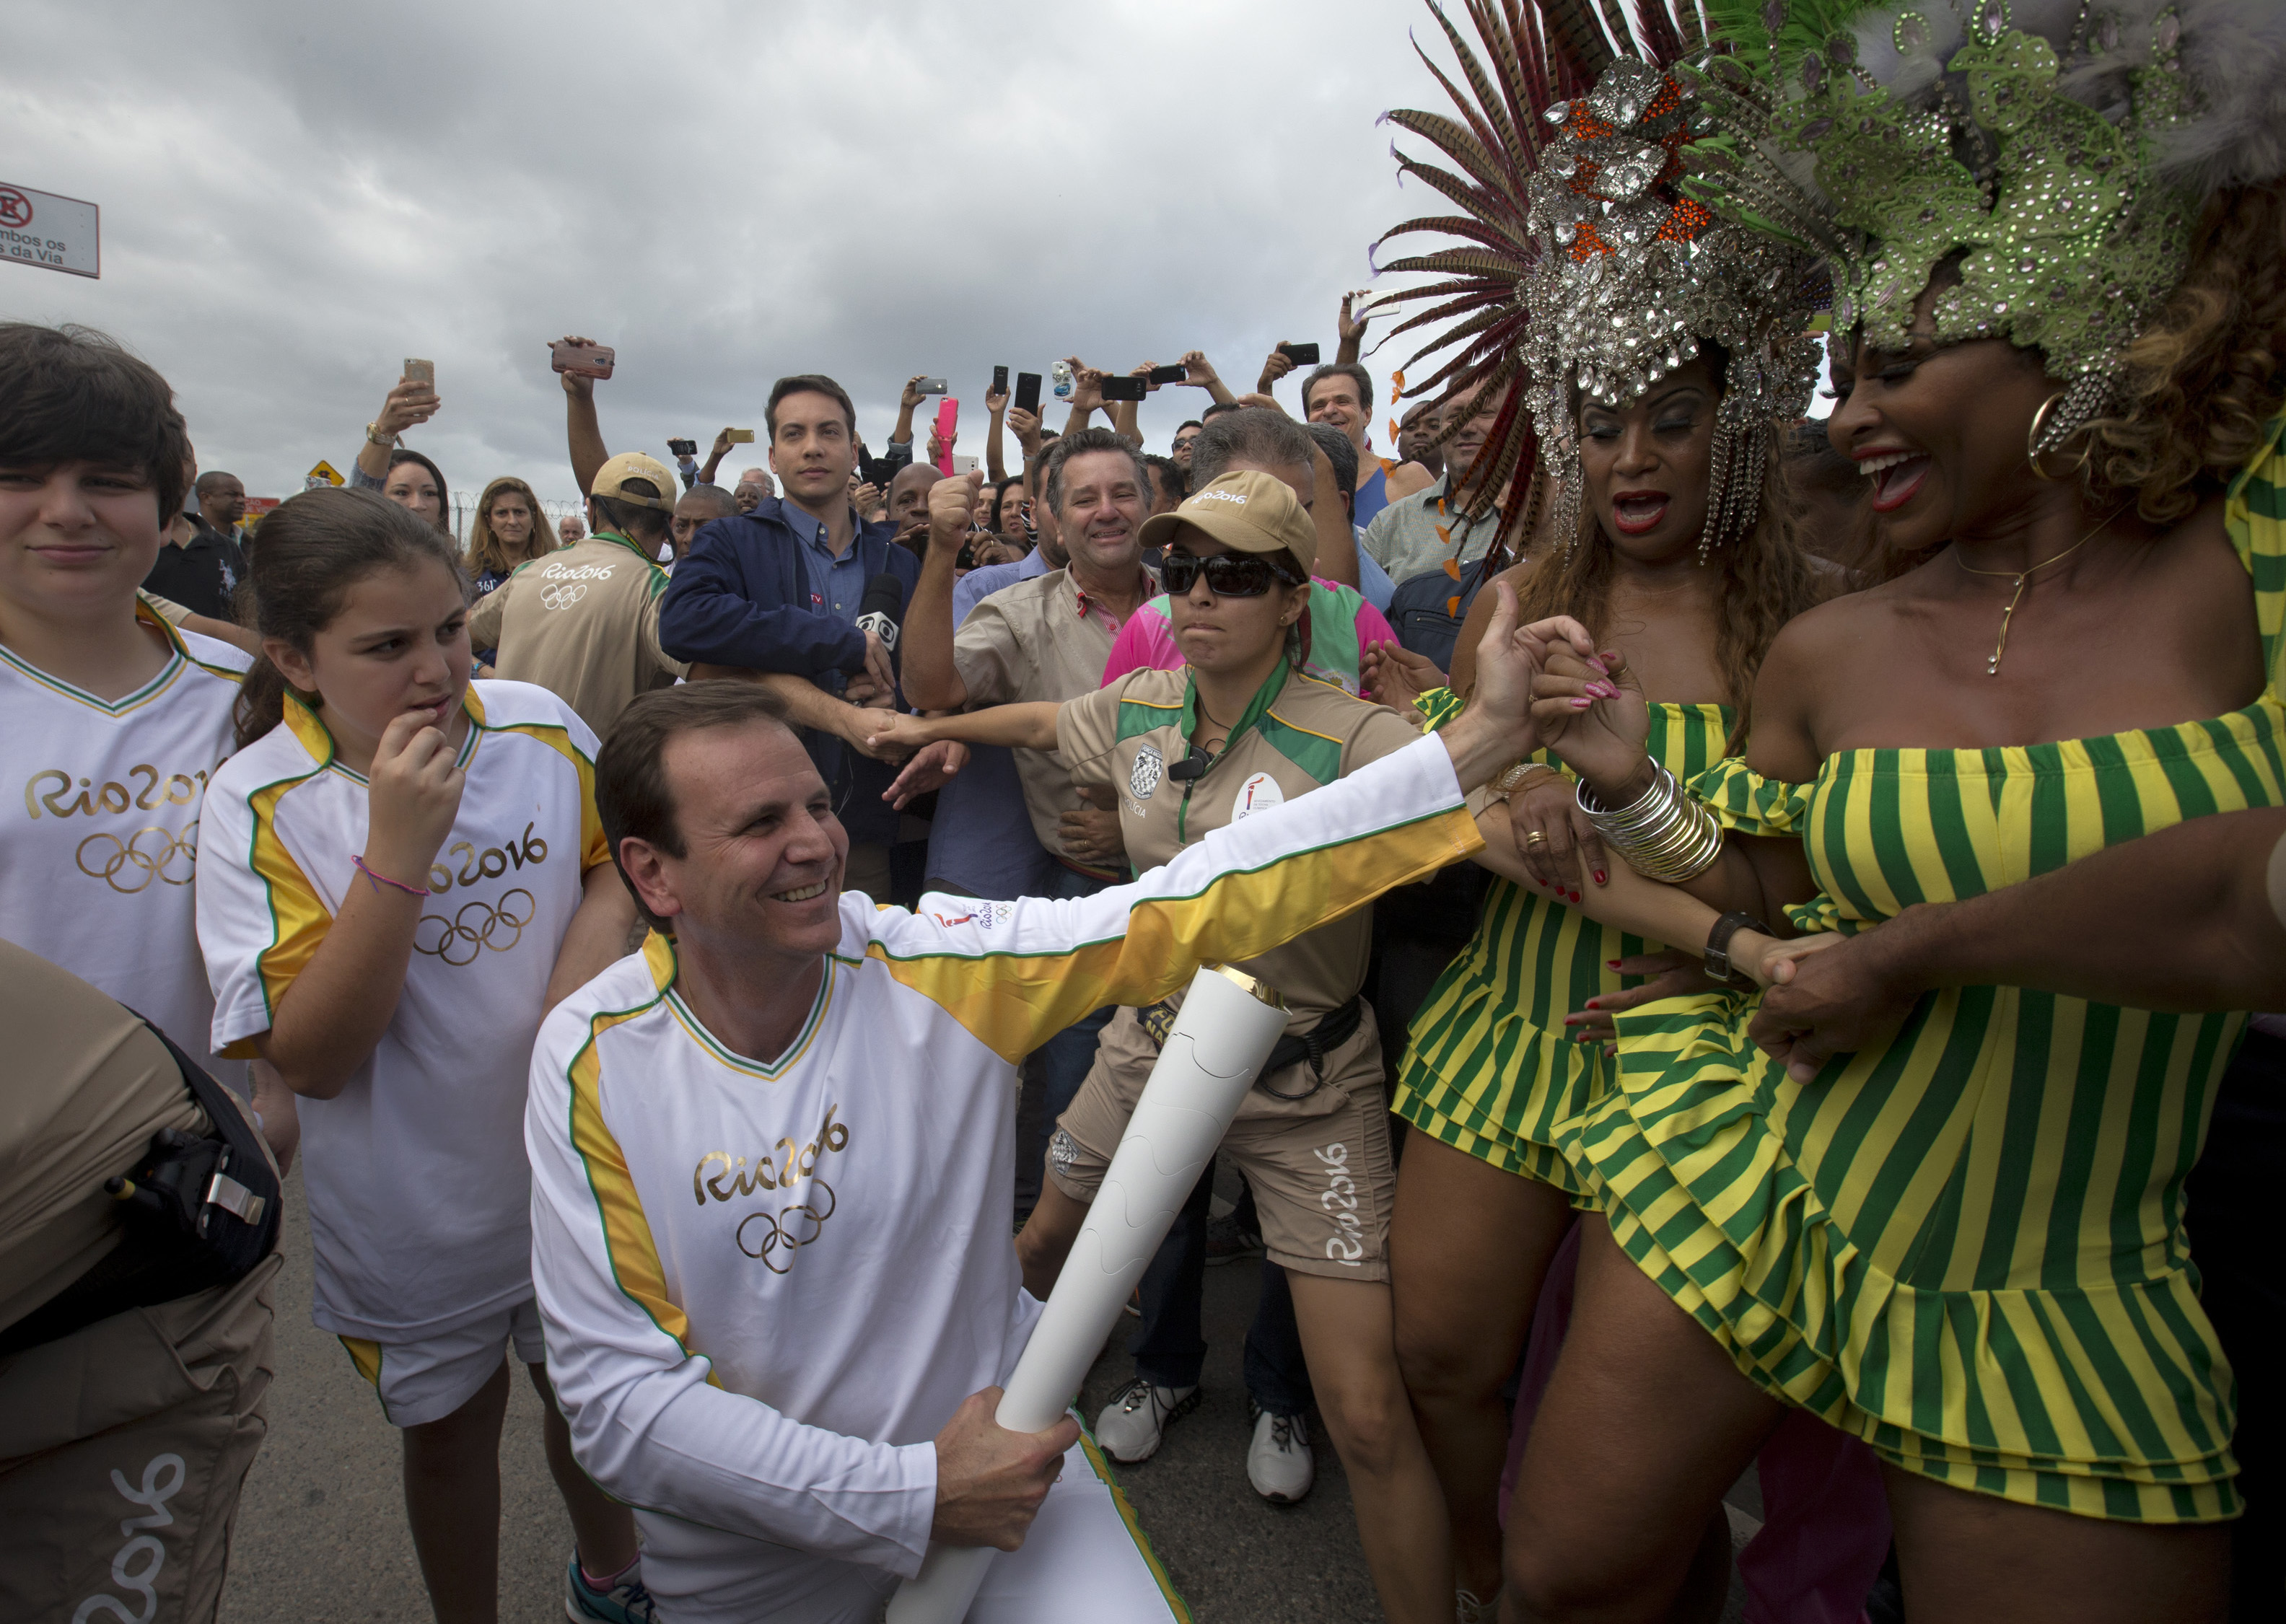 File - In this Aug. 3, 2016 file photo, Rio de Janeiro's Mayor Eduardo Paes, center, holds the Olympic torch, while members of the Mangueira samba school dance, in Rio de Janeiro, Brazil. The former Rio de Janeiro Mayor, the moving force behind organizing